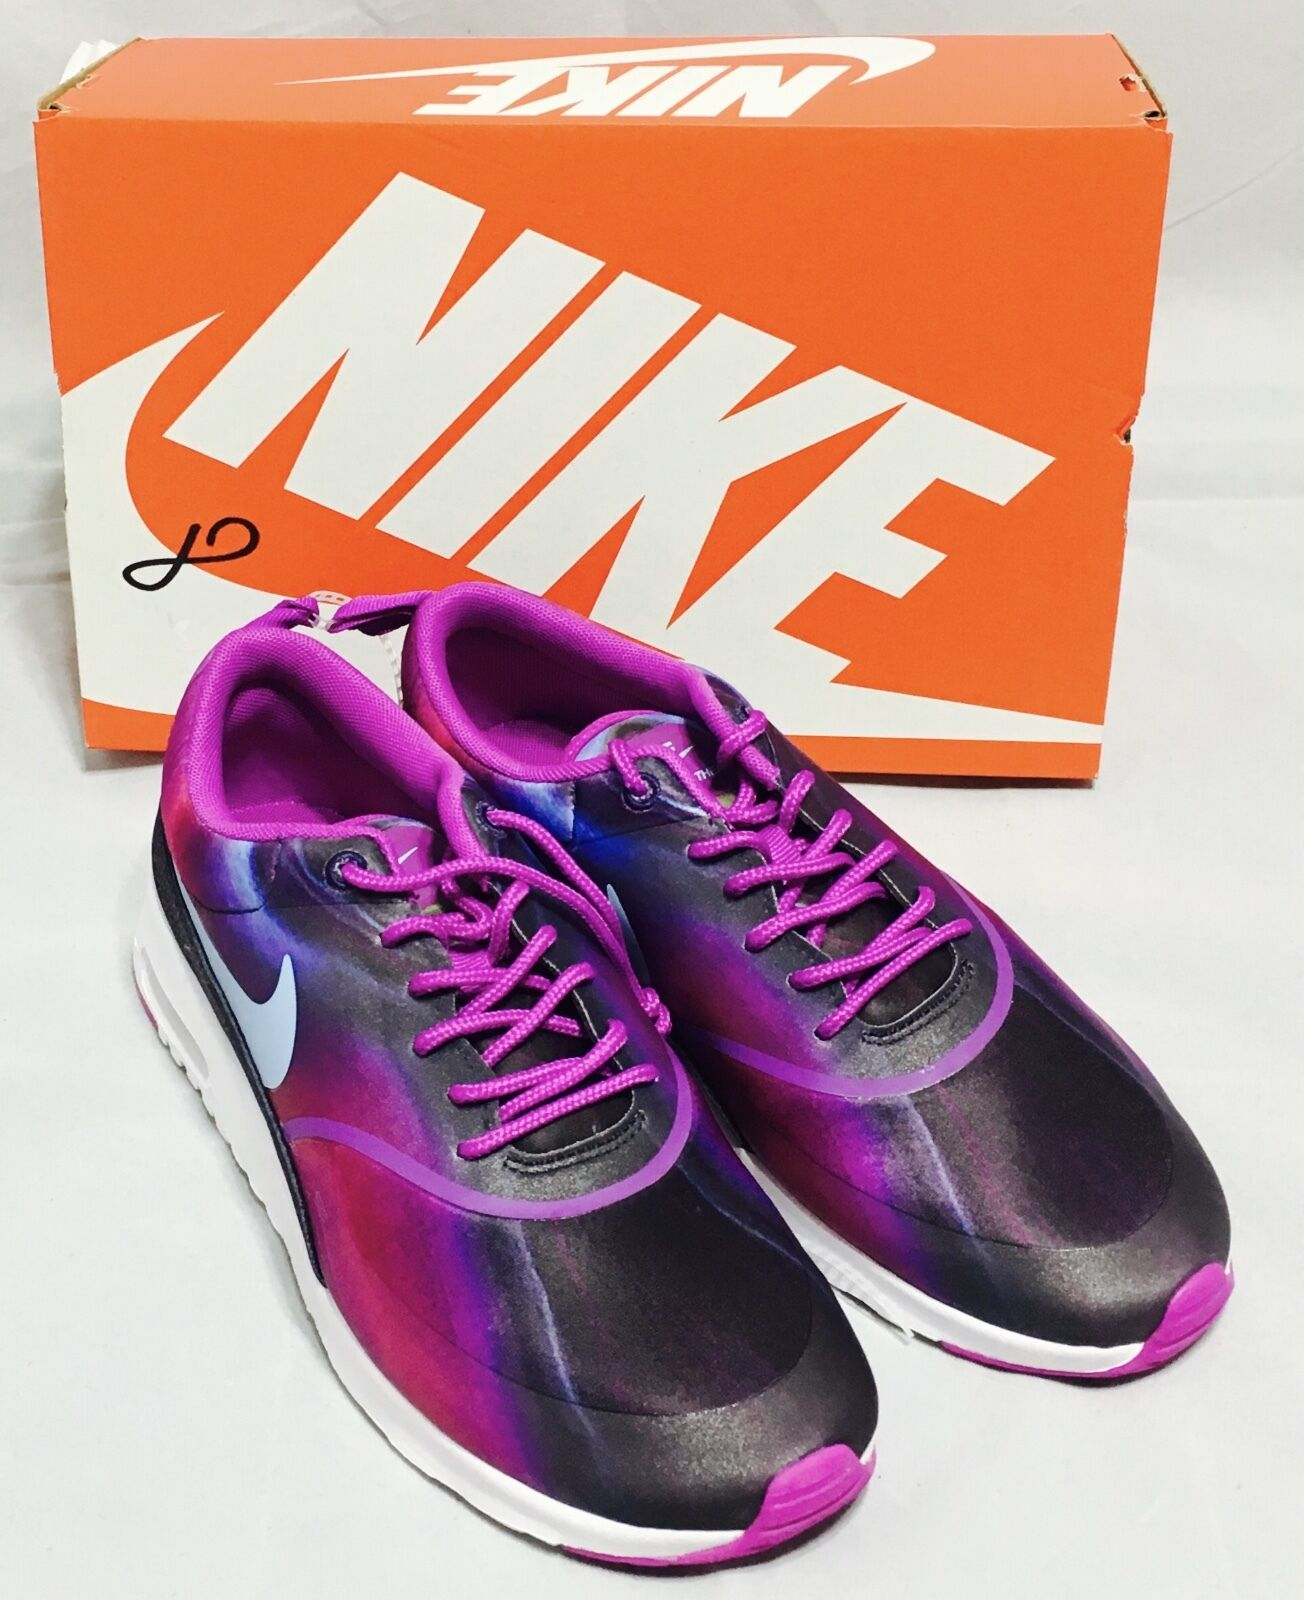 Nike Women Air Max Thea Print Women Nike Shoes 599408 503 Violet Sz 6.5 8 8.5 9 9.5 10 NEW 76d3c6